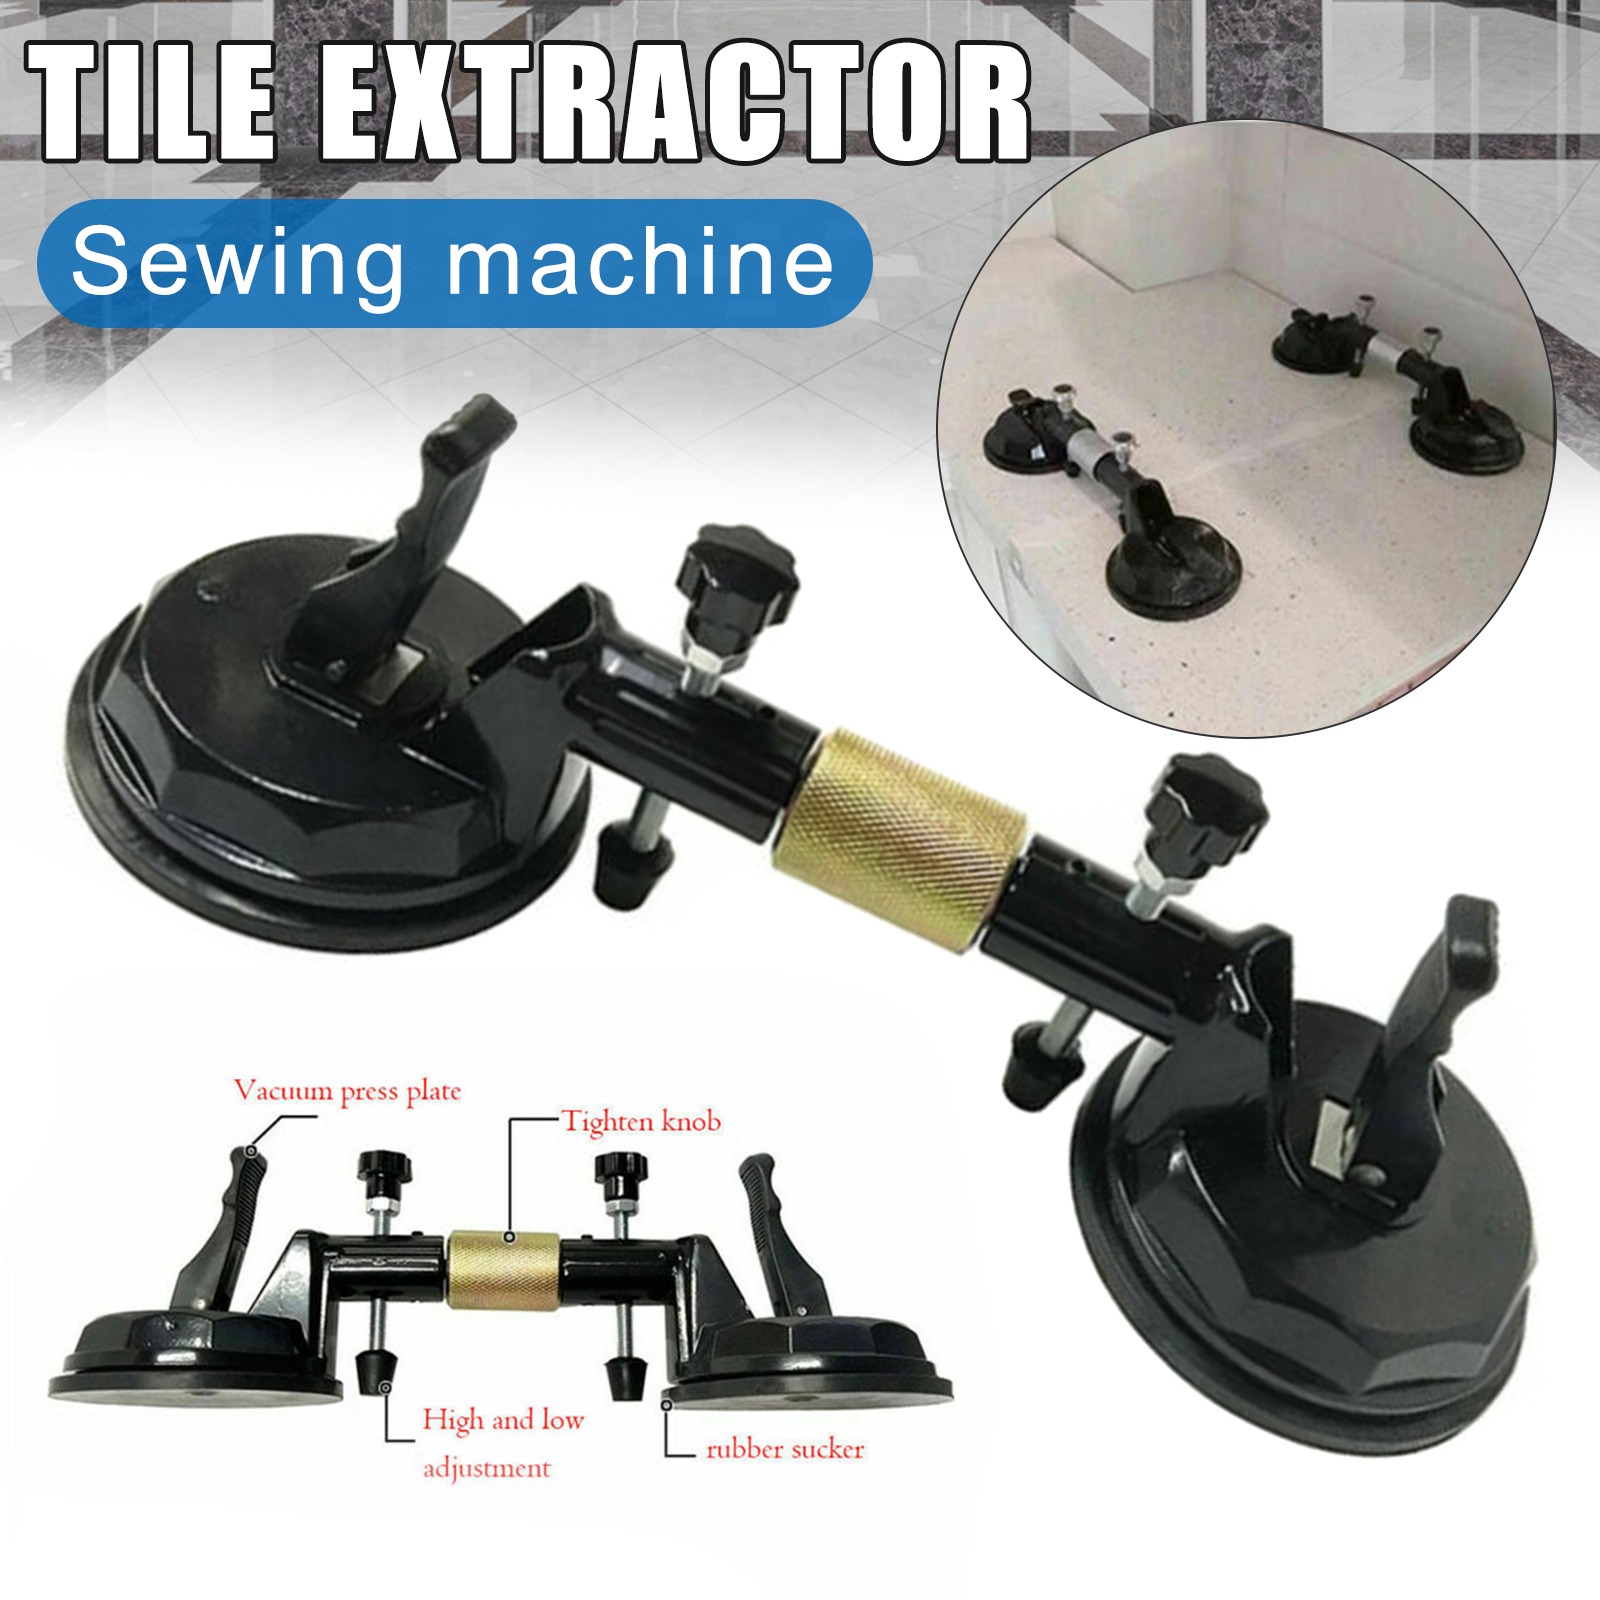 Adjustable Suction Cup Stone Seam Setter for Pulling and Aligning Tiles Flat Surfaces Stone Seam Setter Building Tools